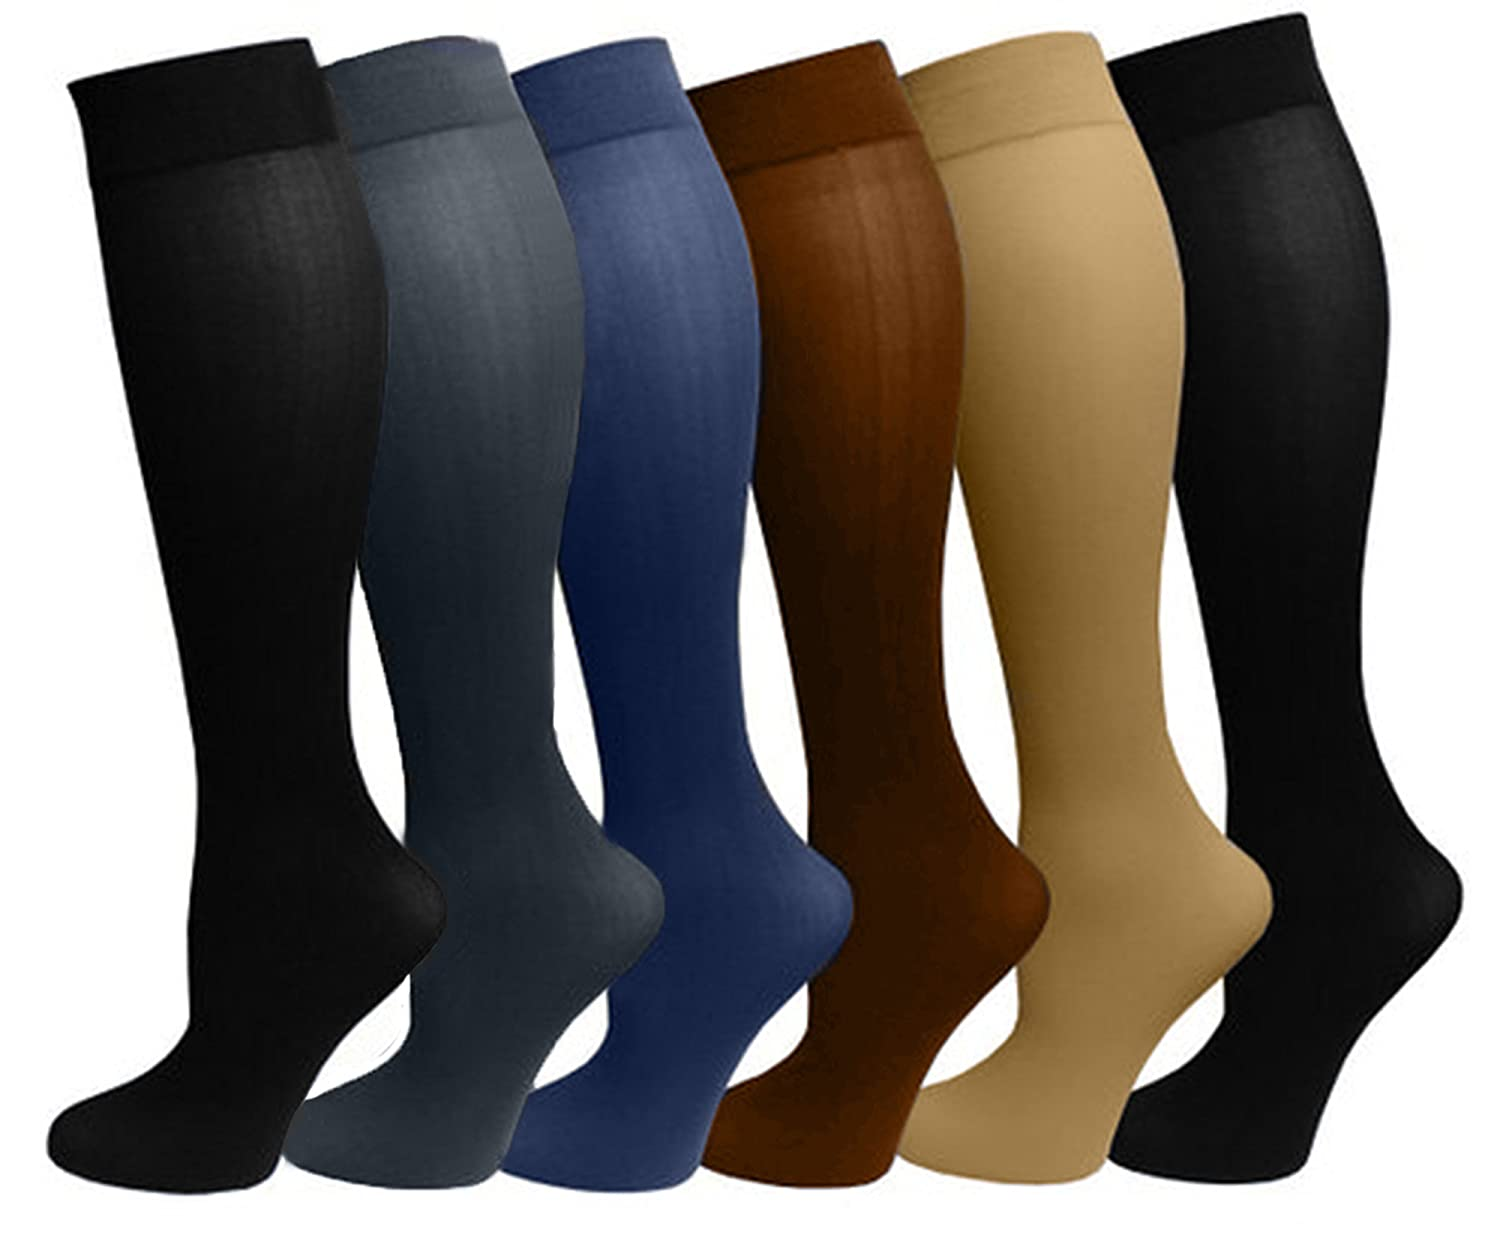 Differenttouch 6 Pairs Pack Women Opaque Stretchy Spandex Knee High Trouser Socks